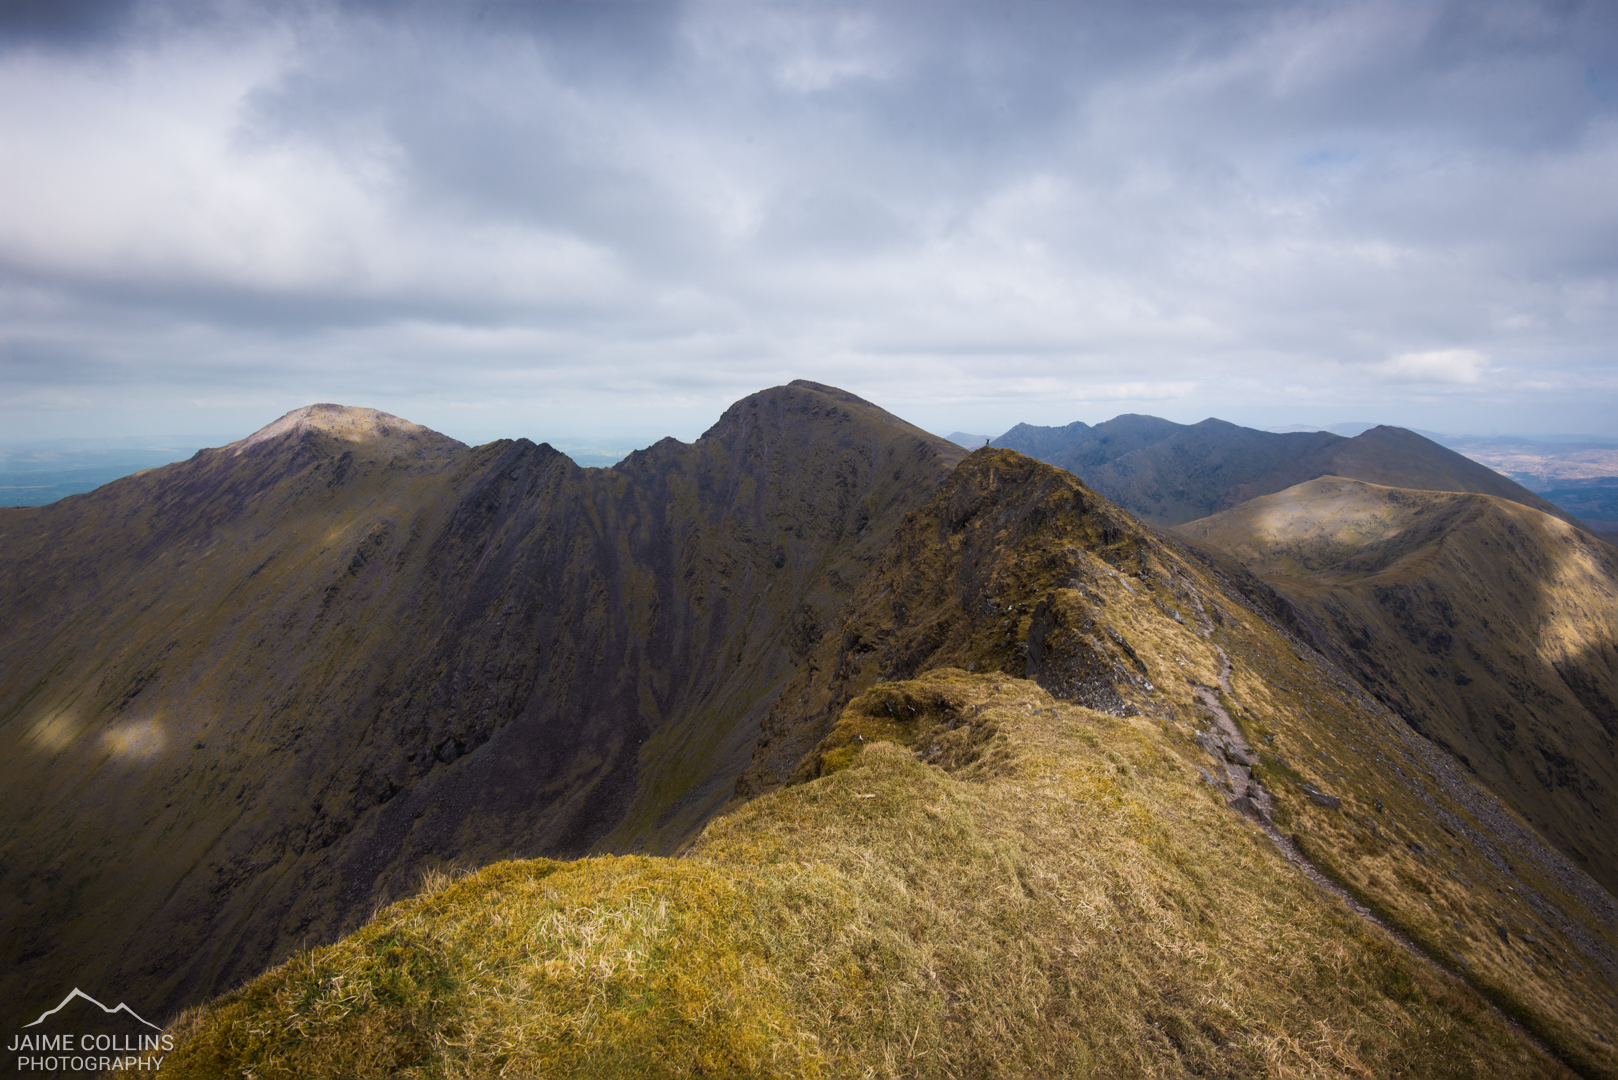 The view from Caher to Carrauntoohil